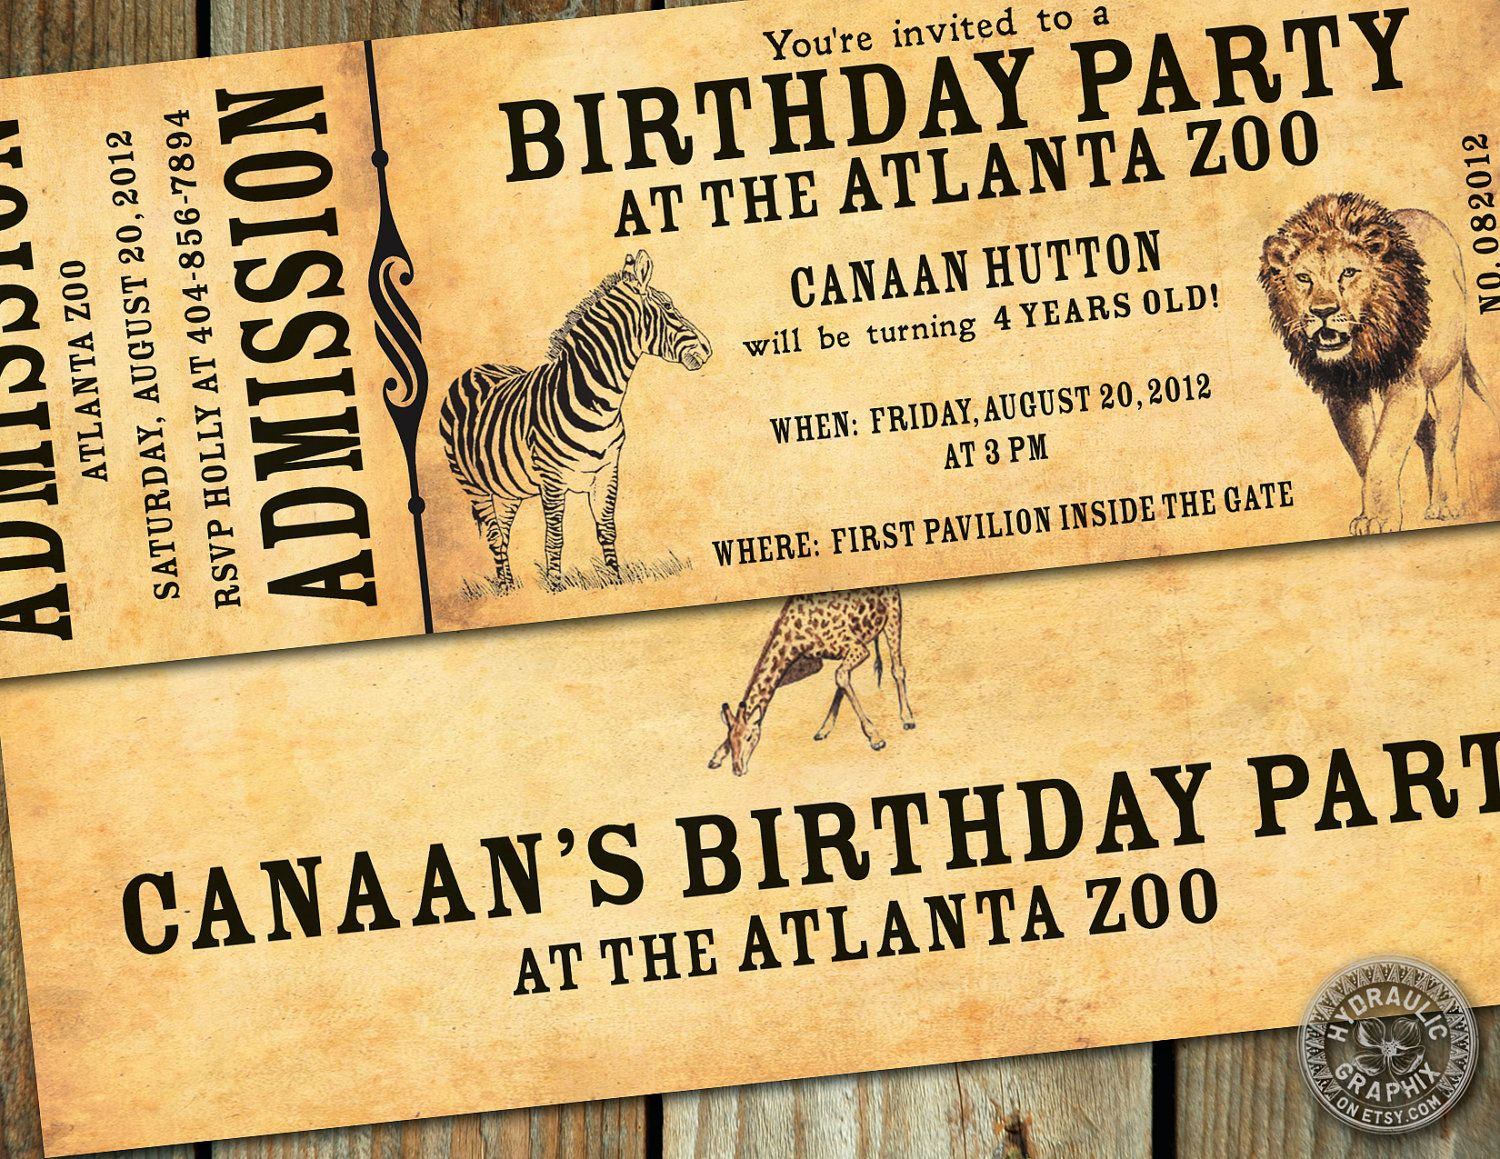 Zoo birthday party invitation printable zoo ticket invitation zoo birthday party ticket invitation printable zoo ticket invite kids birthday party at zoo vintage zoo ticket kids zoo party invite stopboris Choice Image